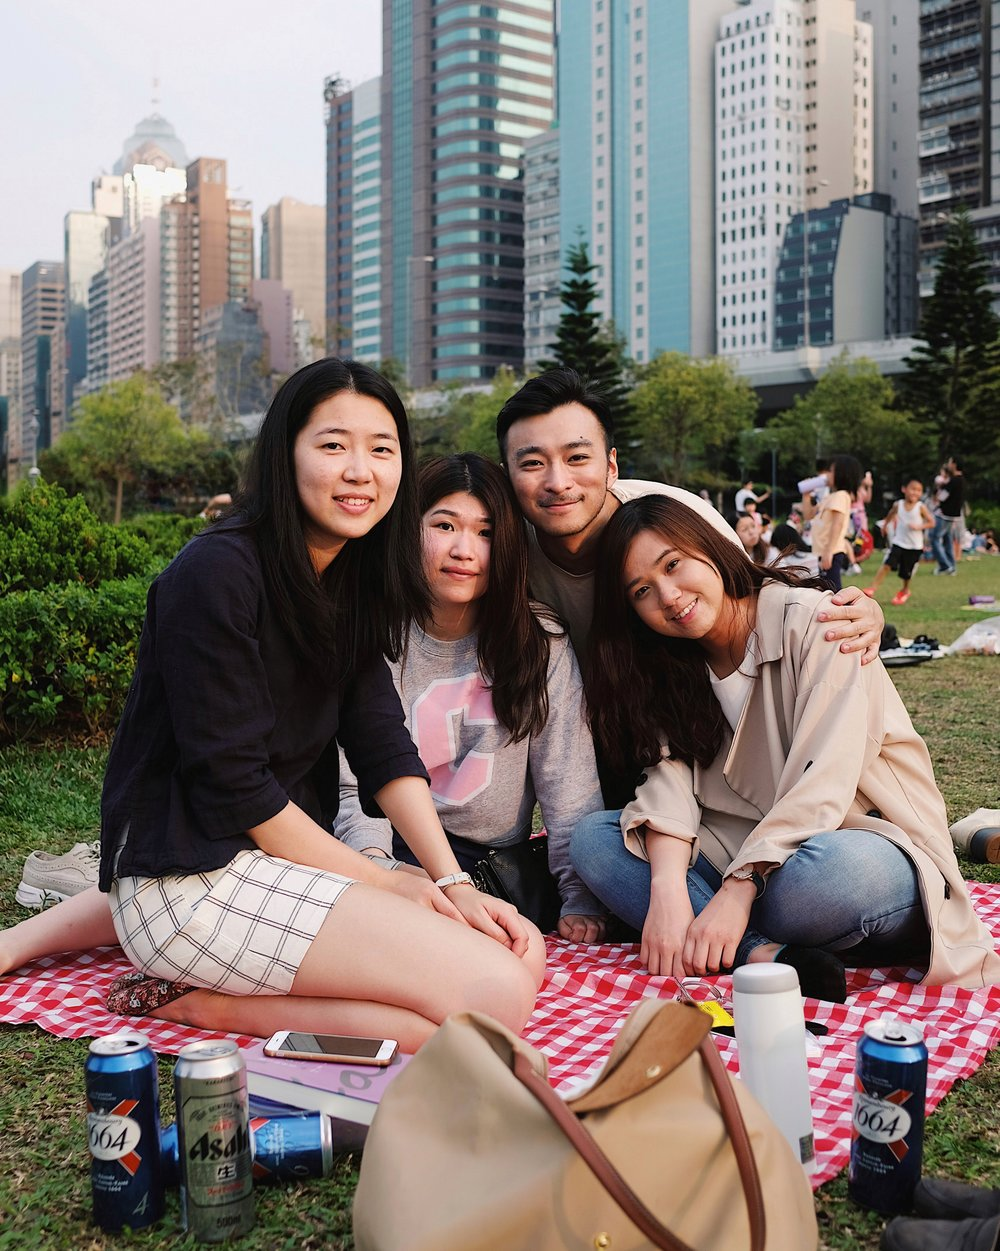 Picnic with High School Friends